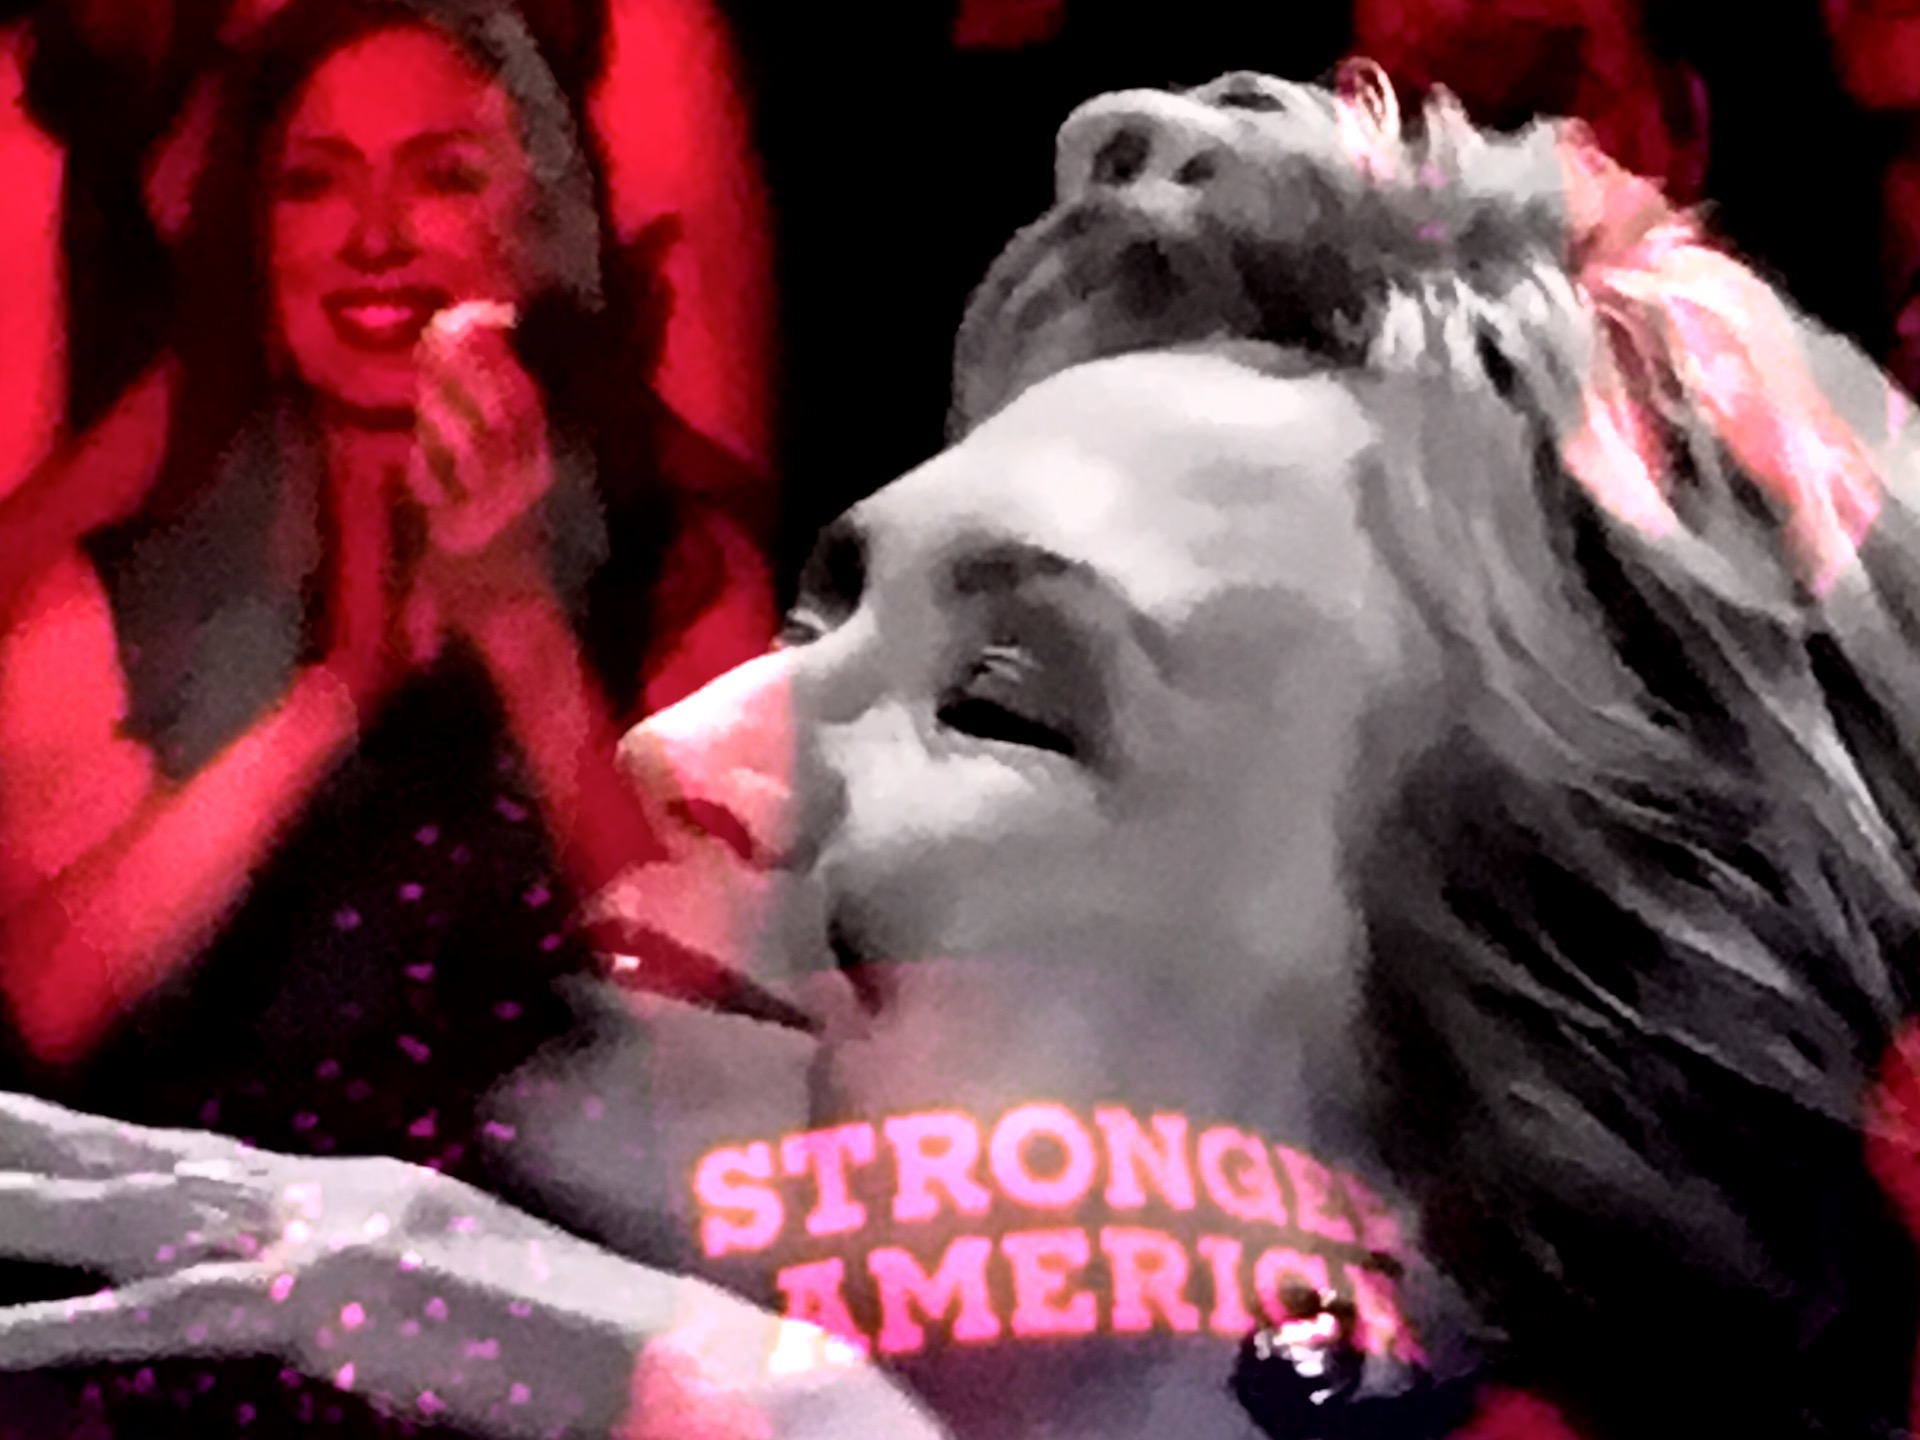 Chelsea Clinton and Hillary Clinton at the DNC. (Composite image by Biz Herman/GroundTruth)